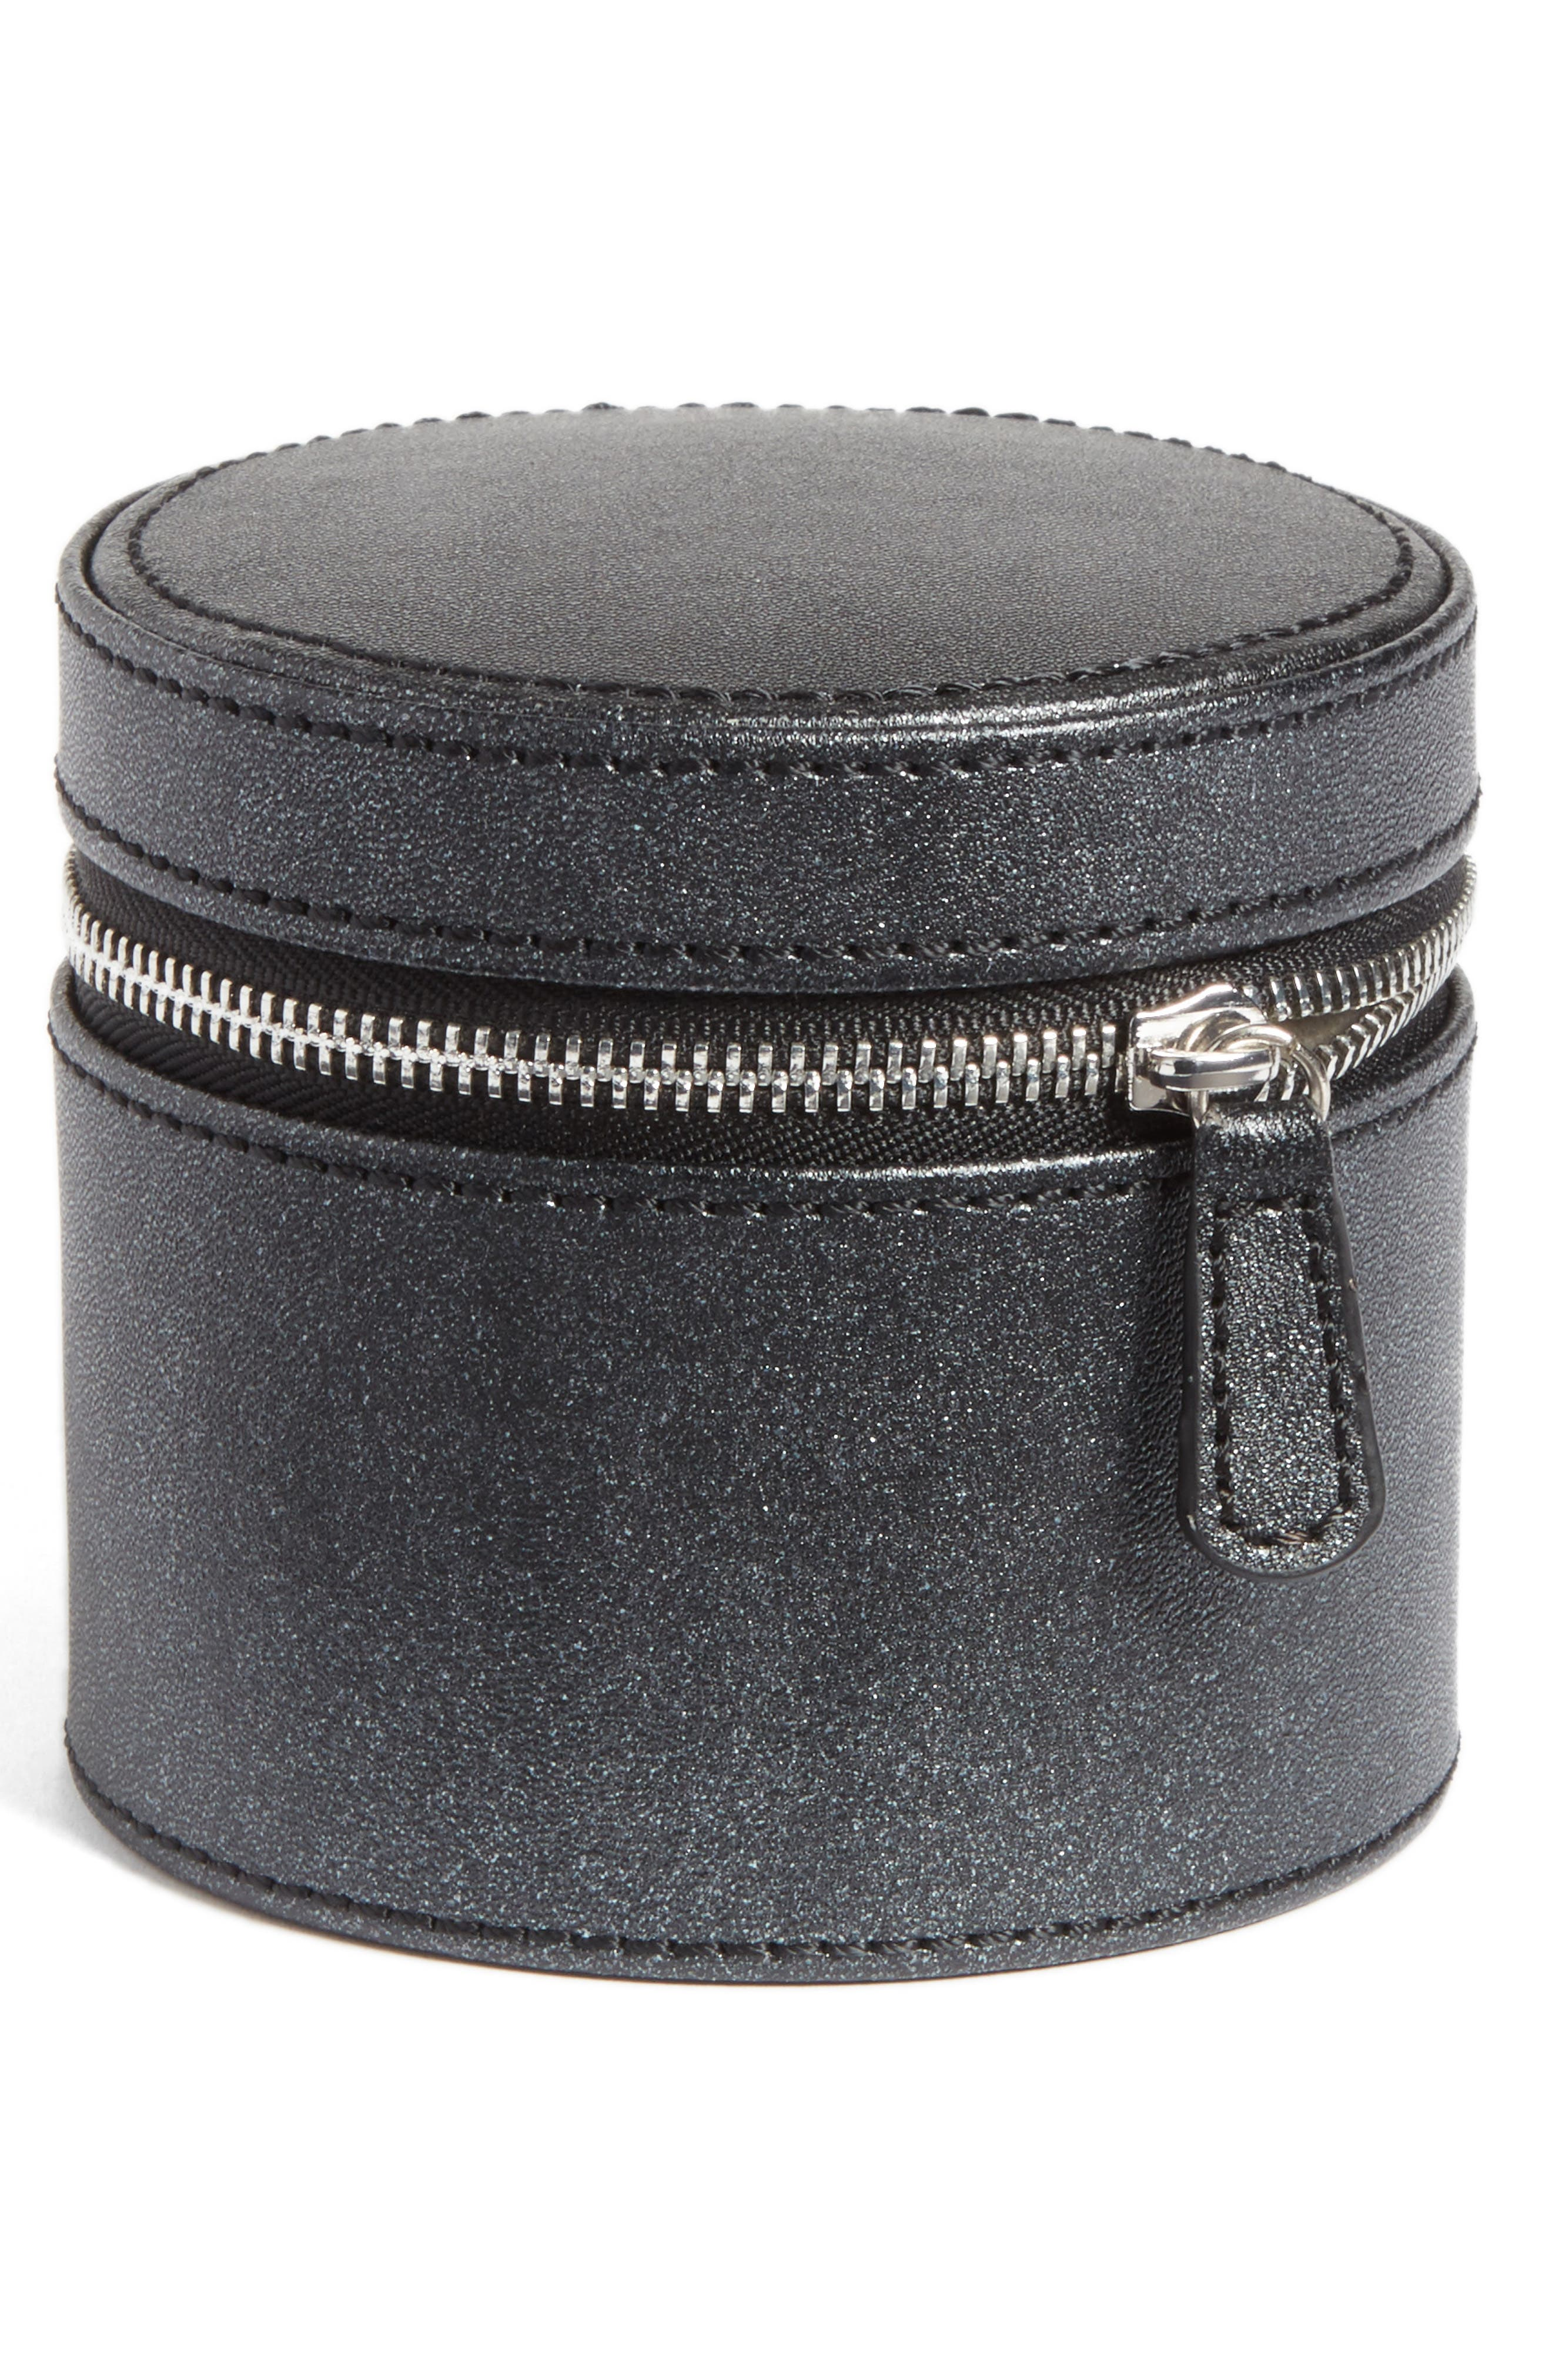 Small Round Zippered Jewelry Case,                             Main thumbnail 1, color,